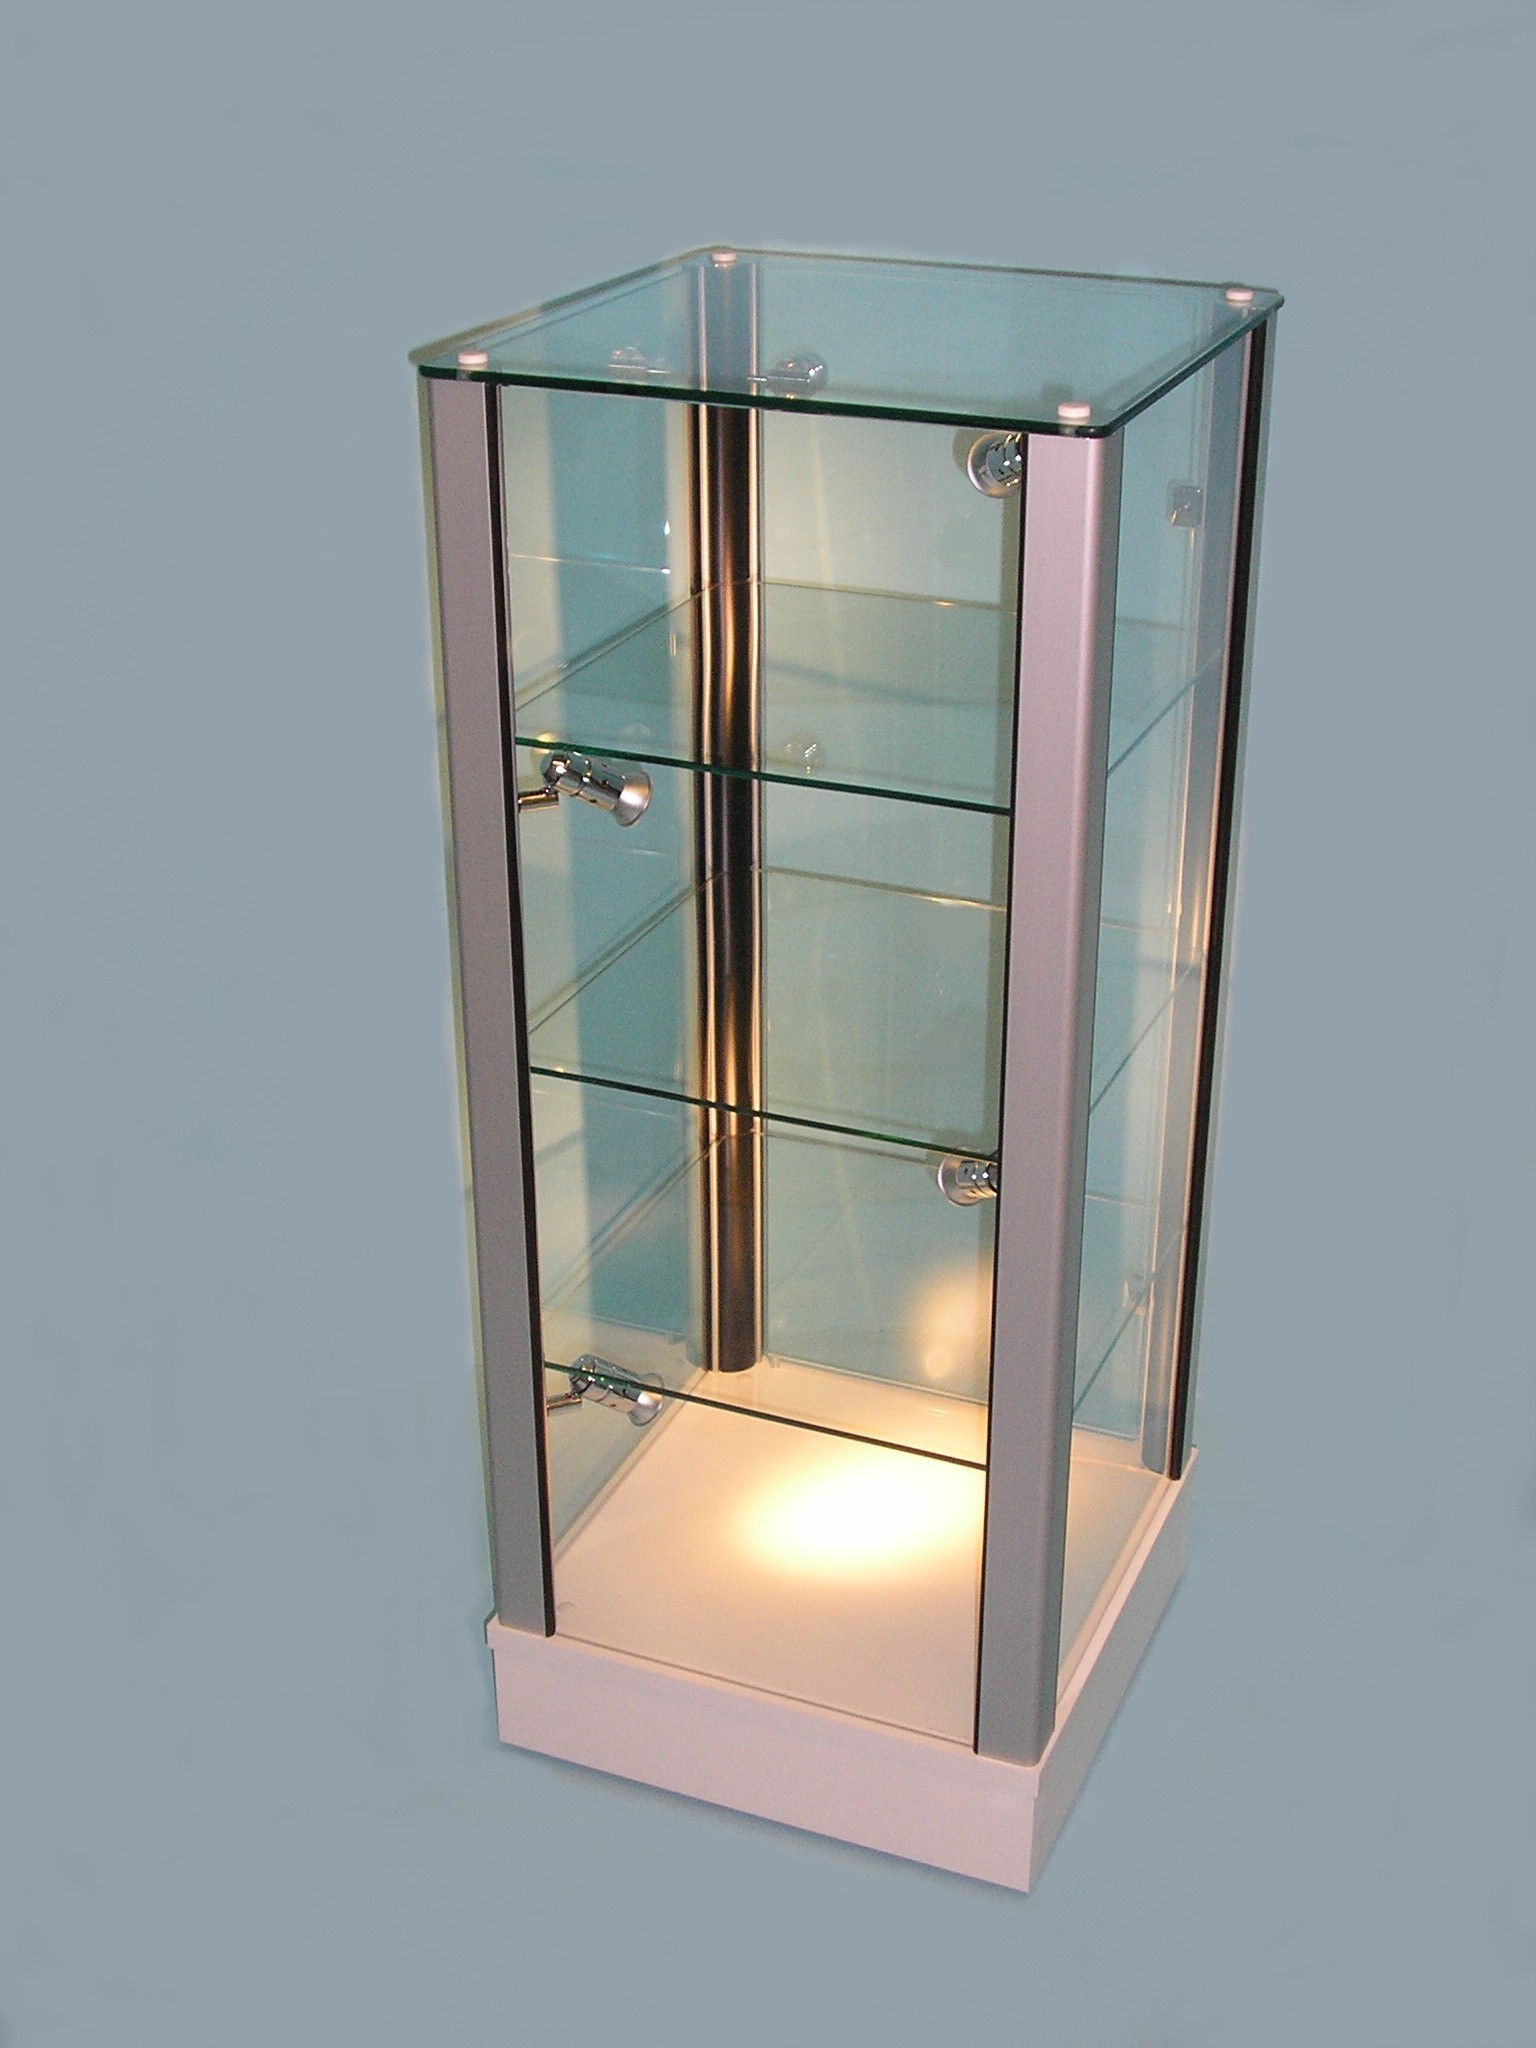 led display case related keywords suggestions led. Black Bedroom Furniture Sets. Home Design Ideas